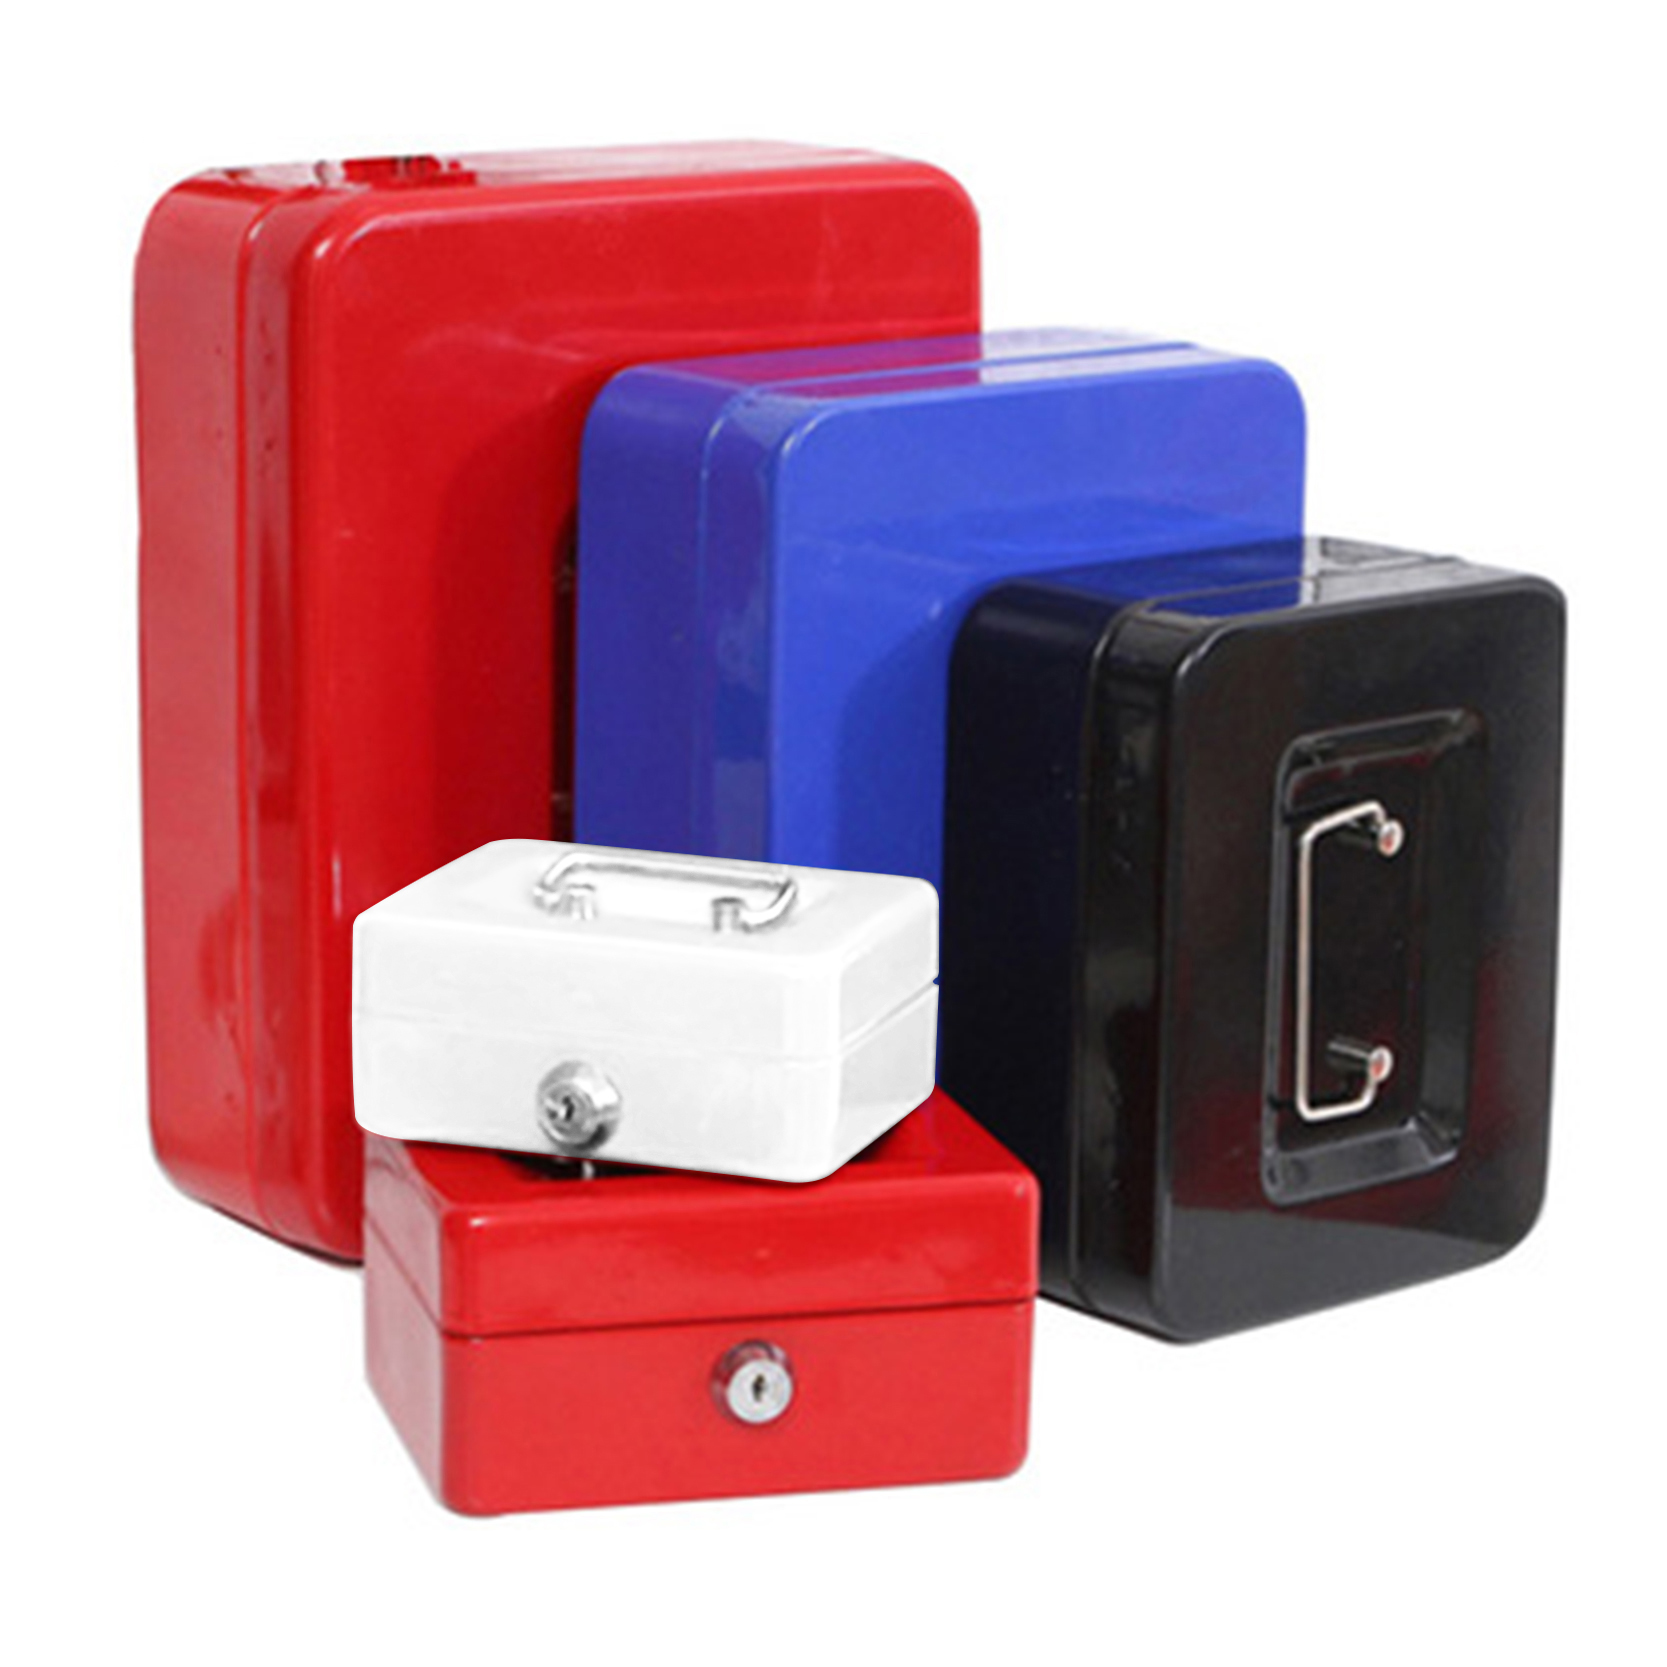 IMPORX Mini Cash Coin Money Safe Box Practical Metal Stainless Steel Secret Box 4 Colors Key Safe Storage Box For Home Office